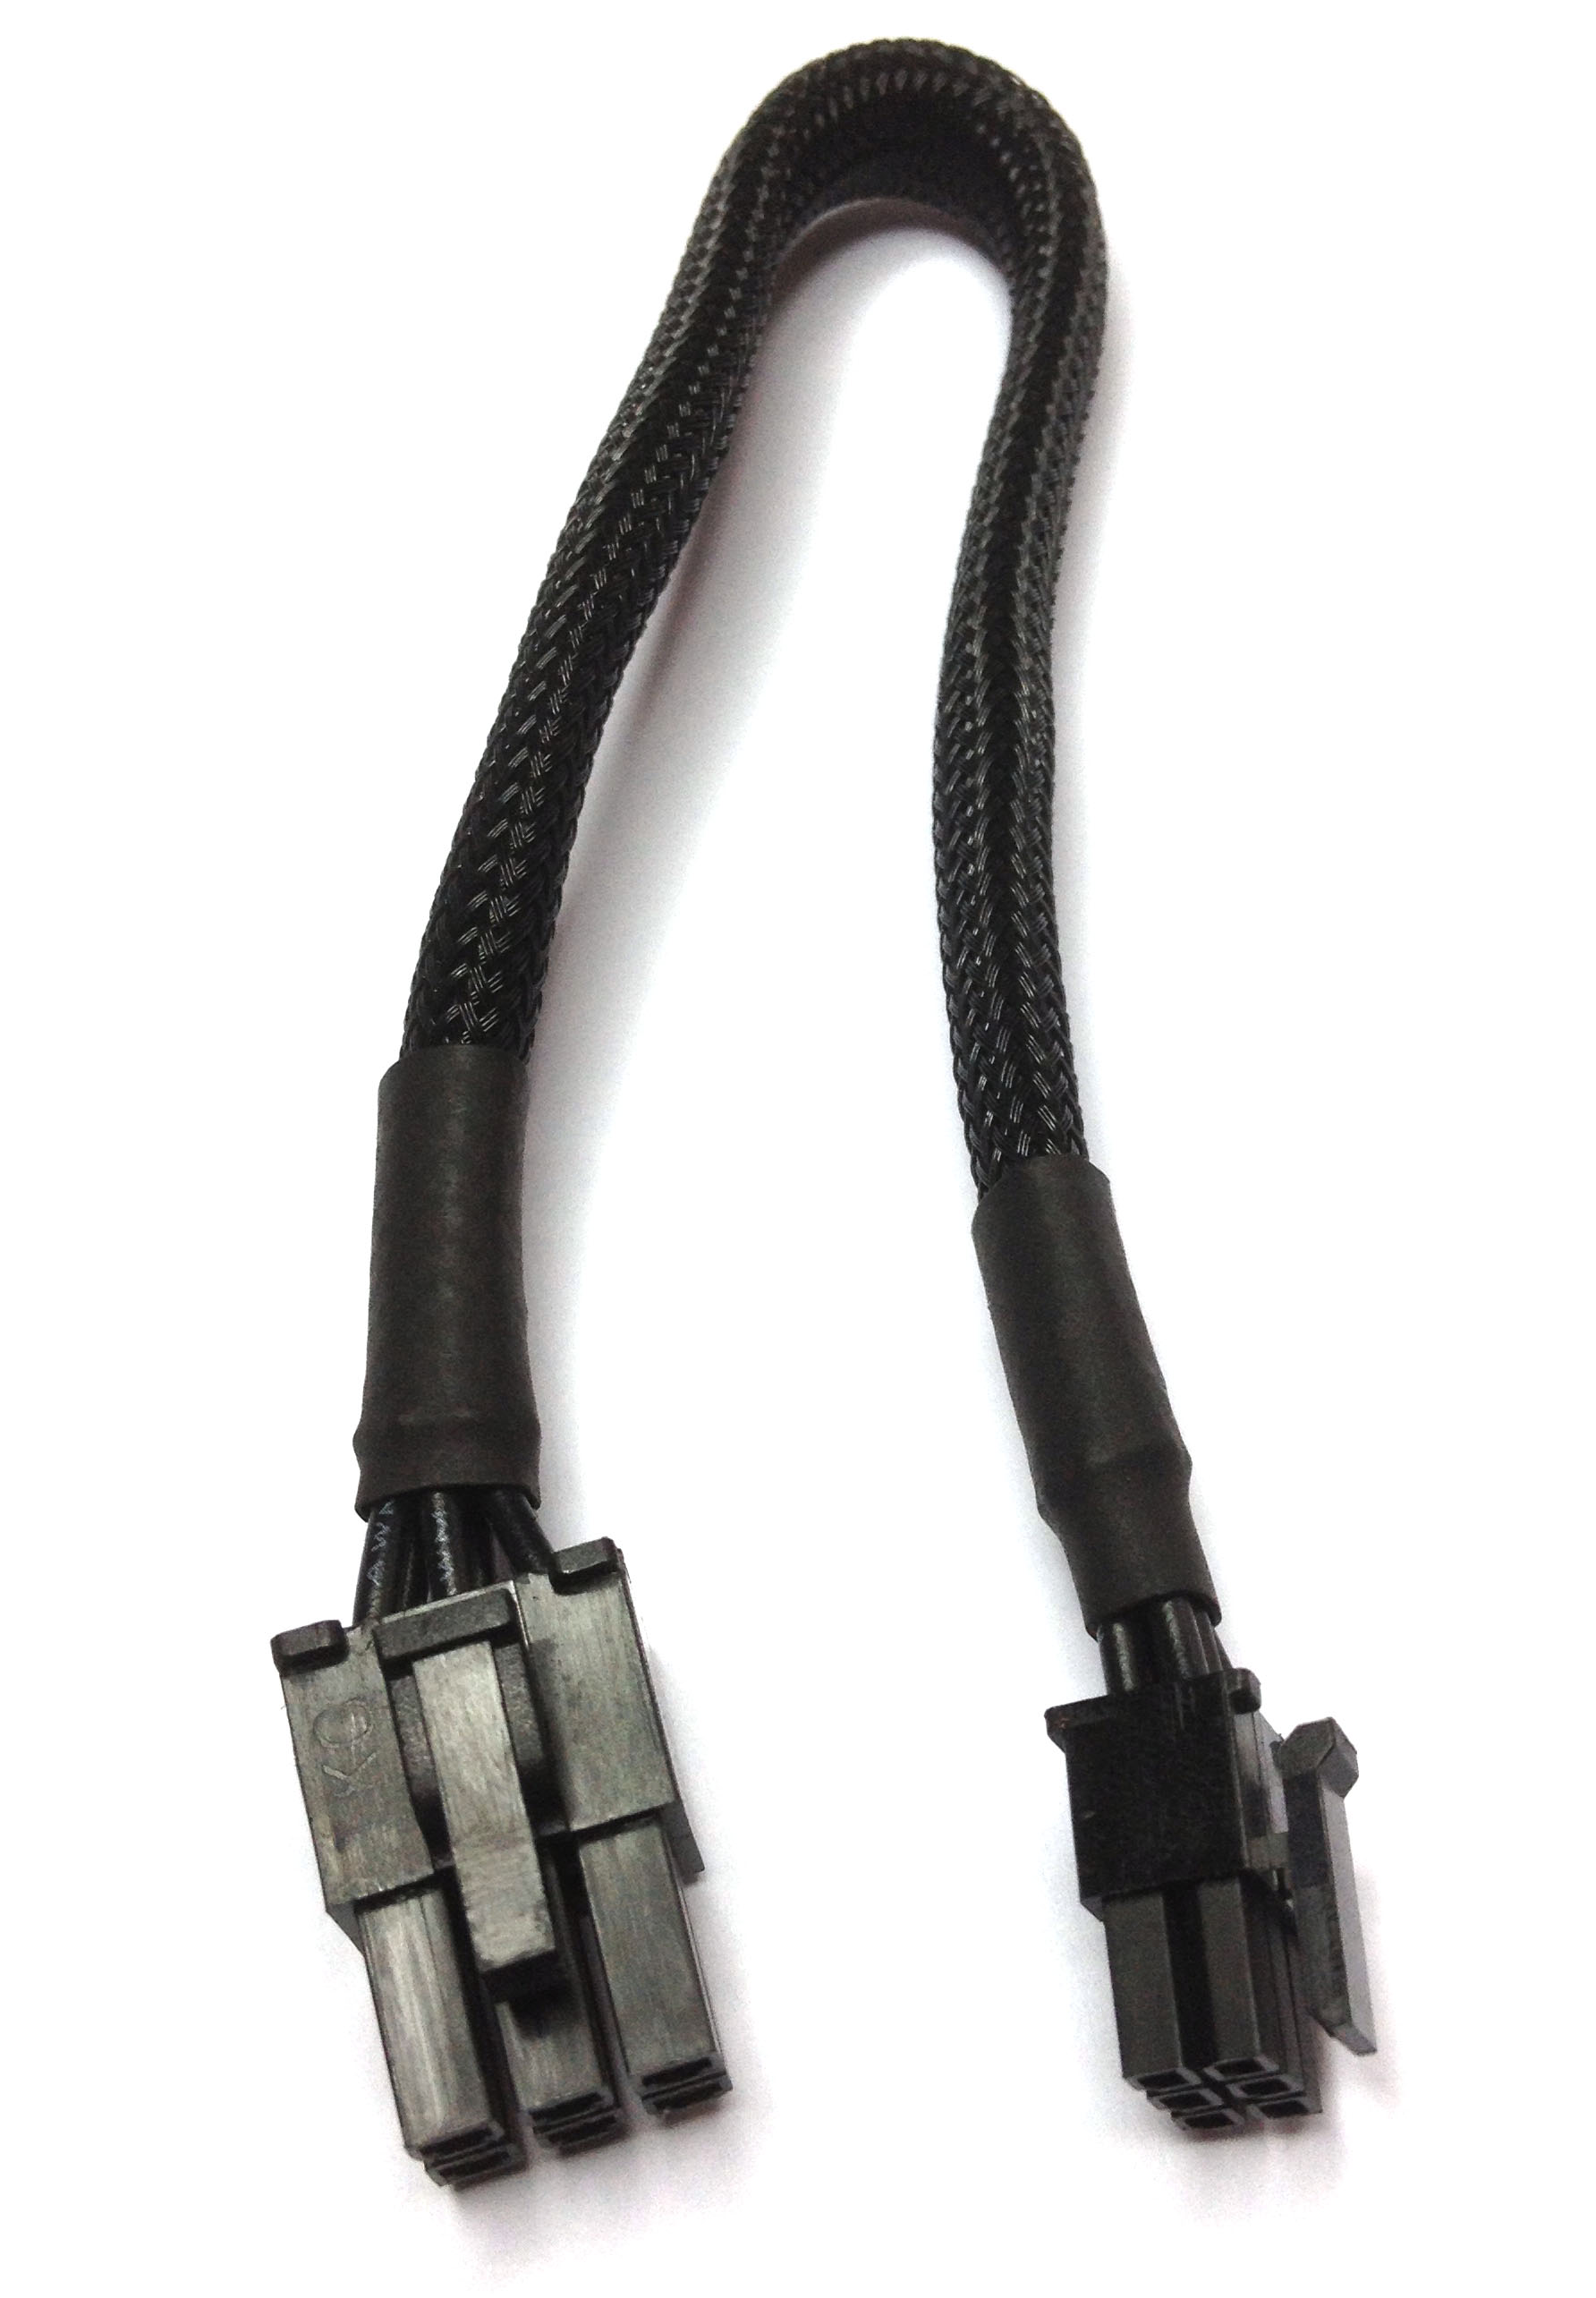 Apple Mac Pro PCIe GPU 6 pins power cable